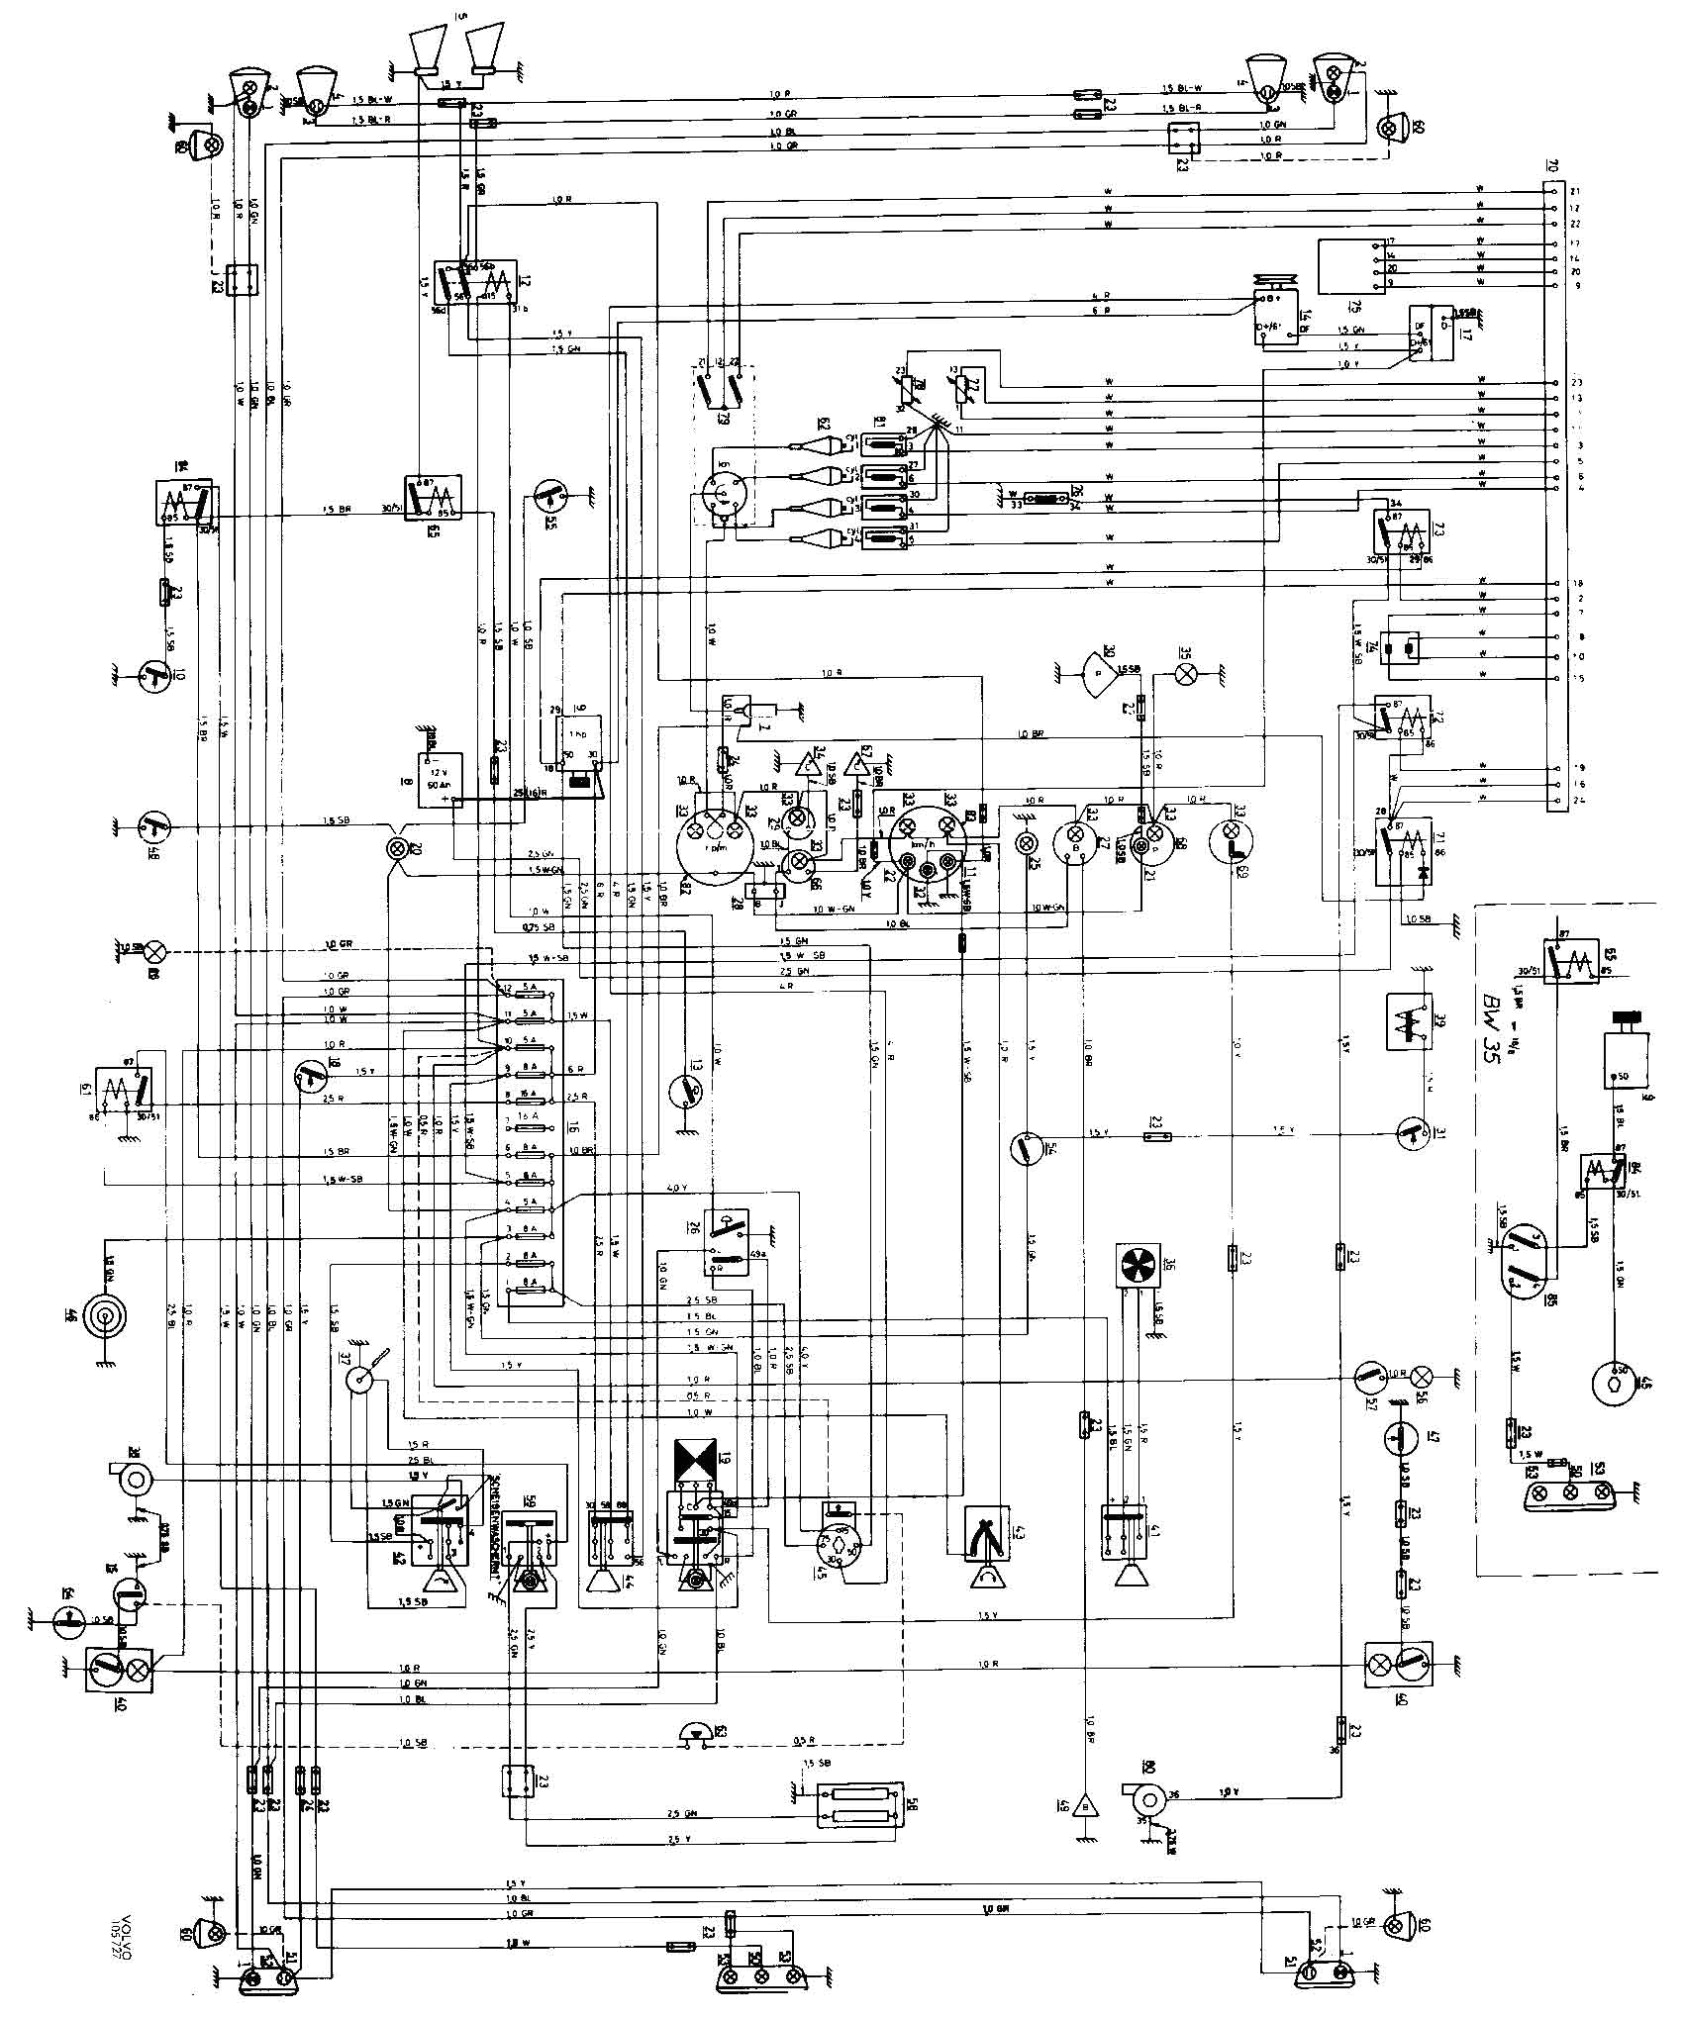 volvo semi truck fuse diagram fresh 1986 volvo 740 wiring diagram volvo truck fuse box diagram jpg